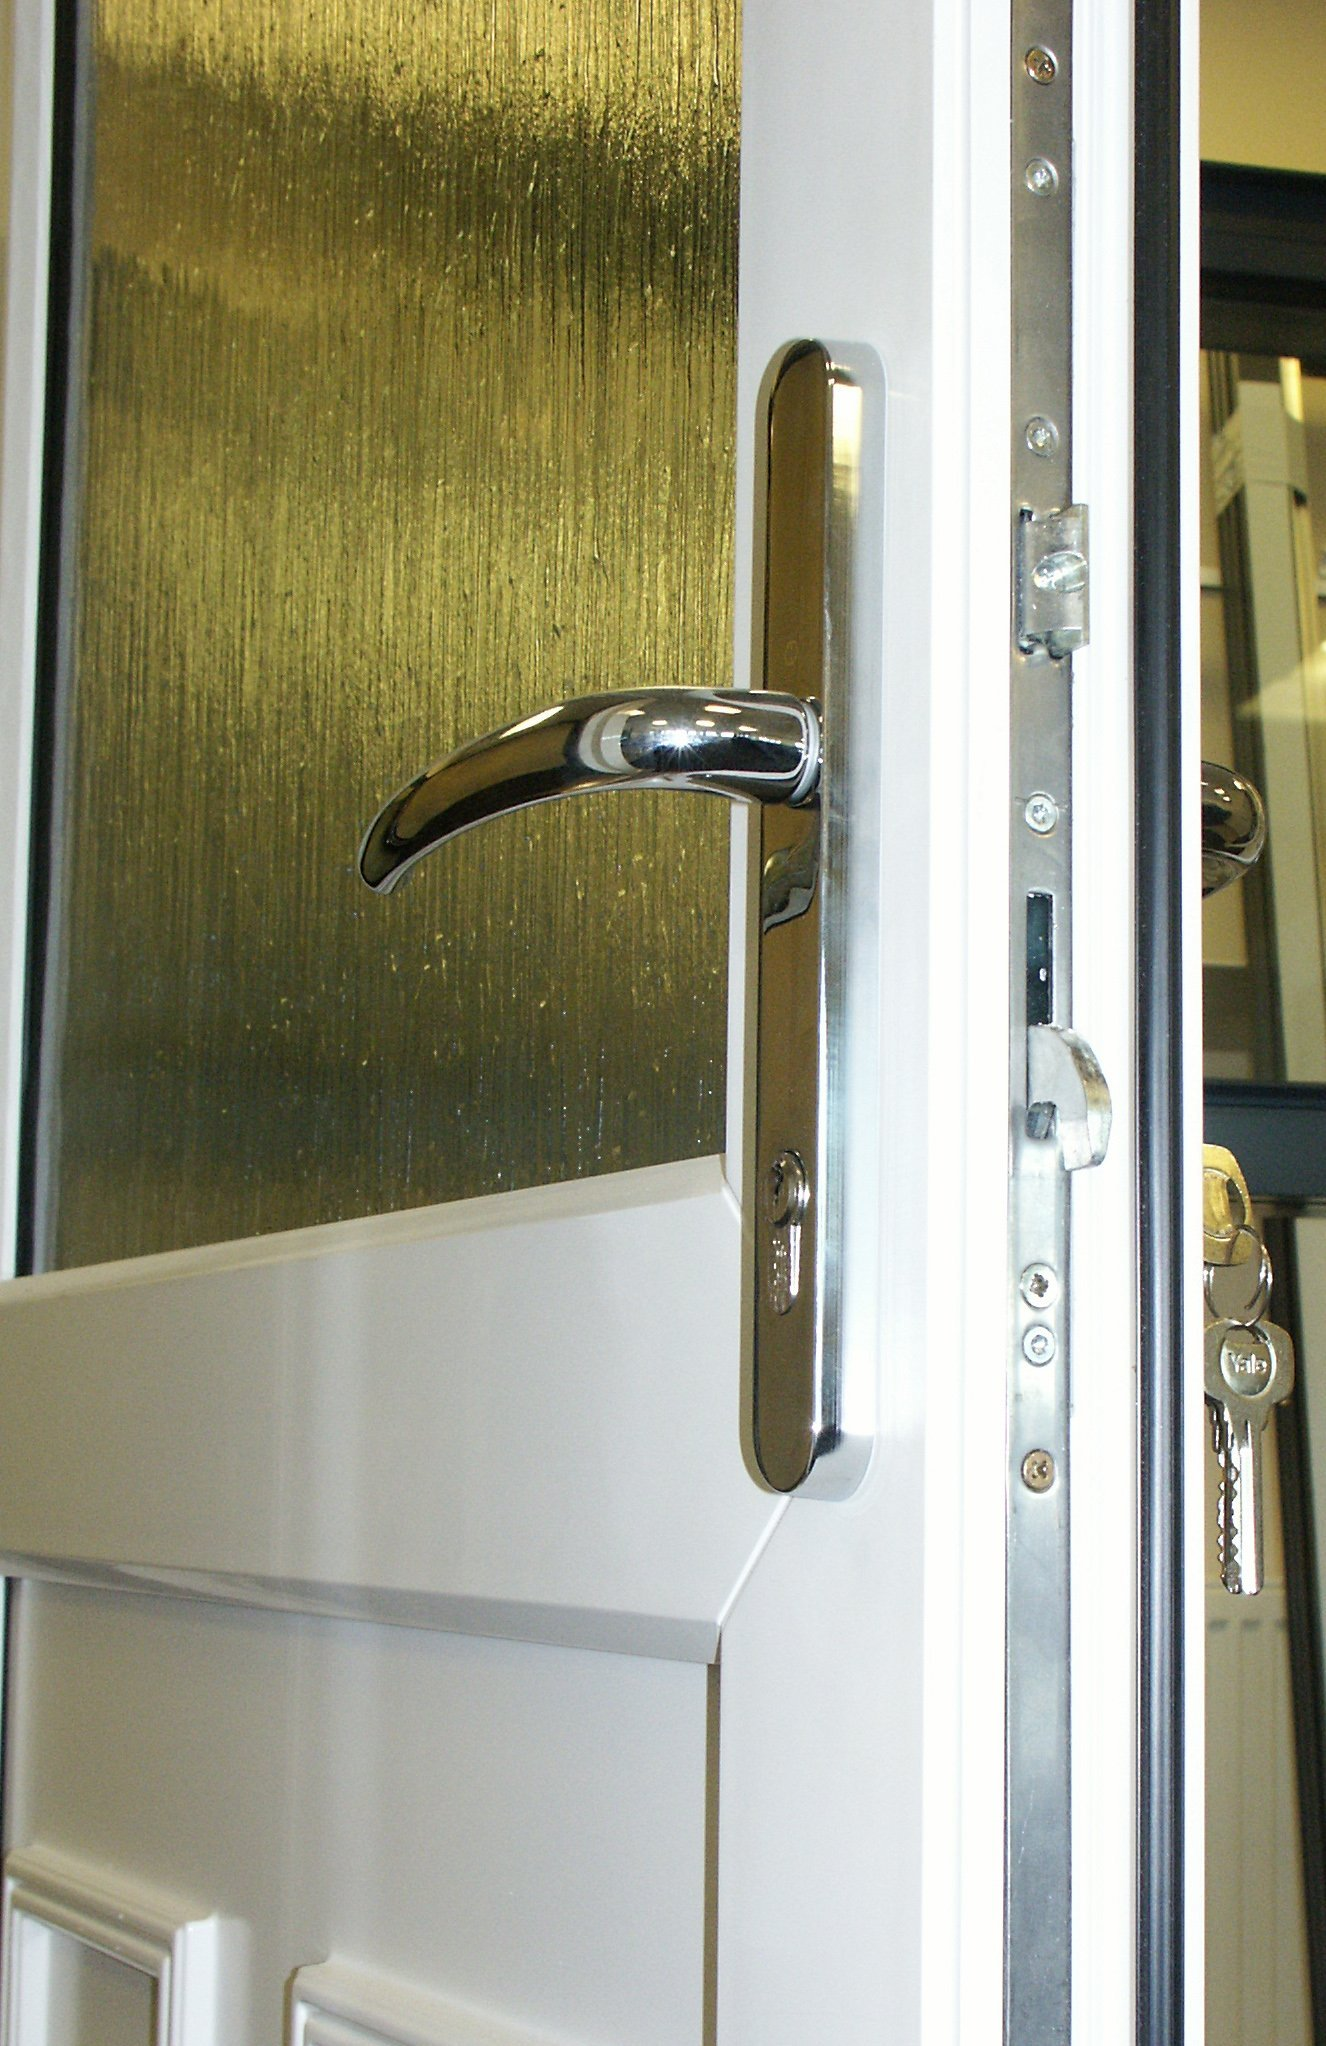 Is this the most secure U-PVC door available in the market?